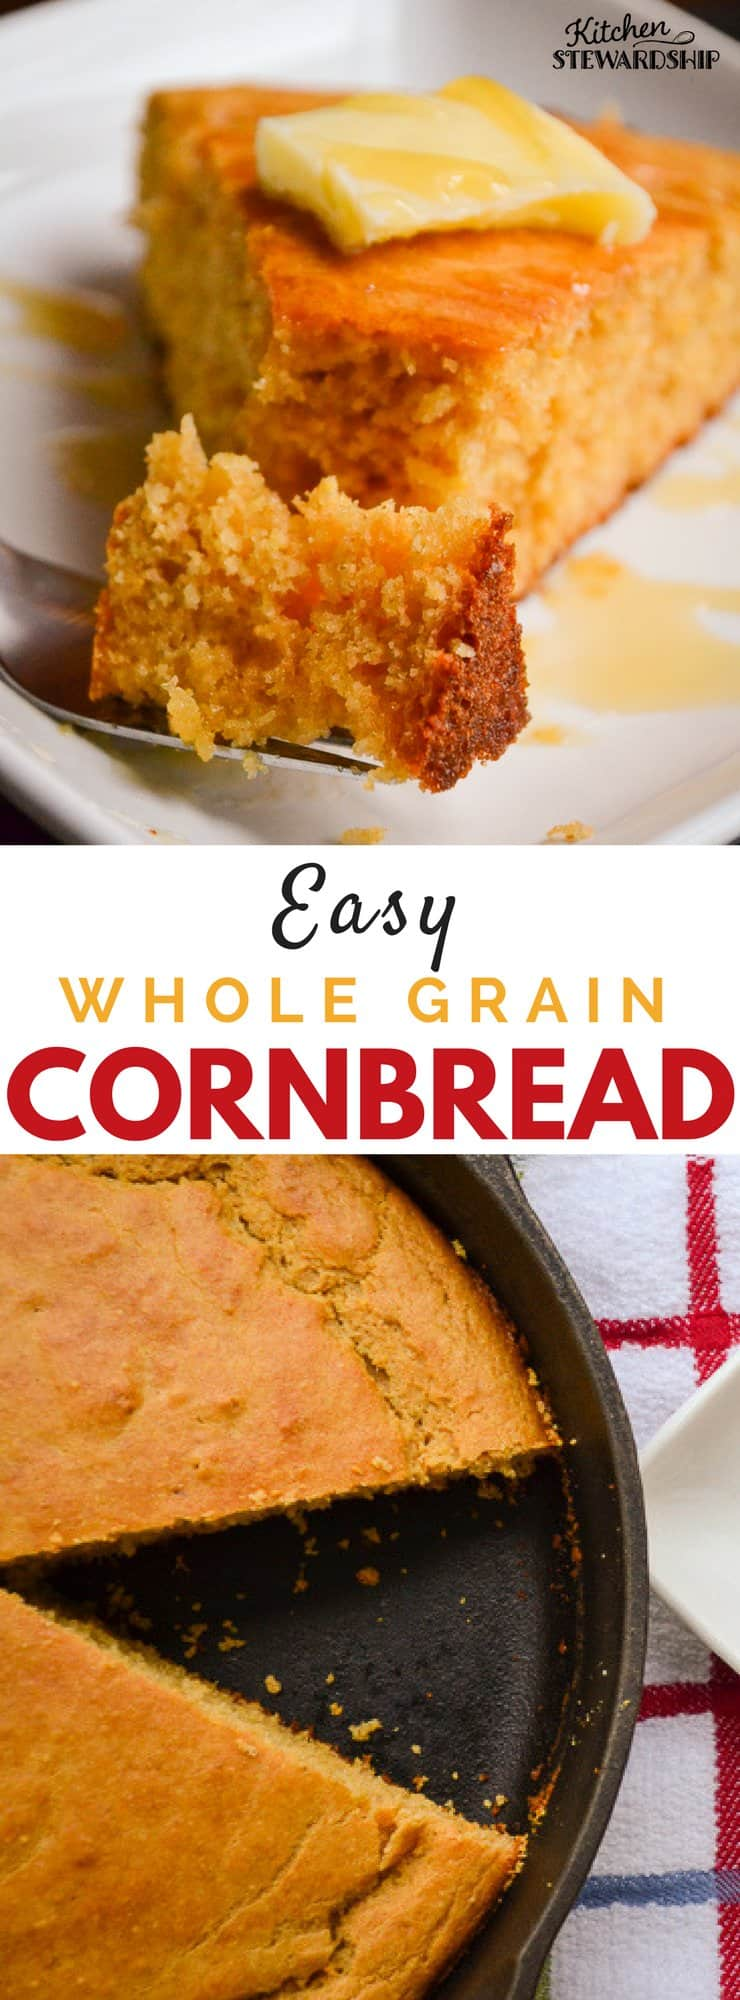 Whole Grain Cornbread